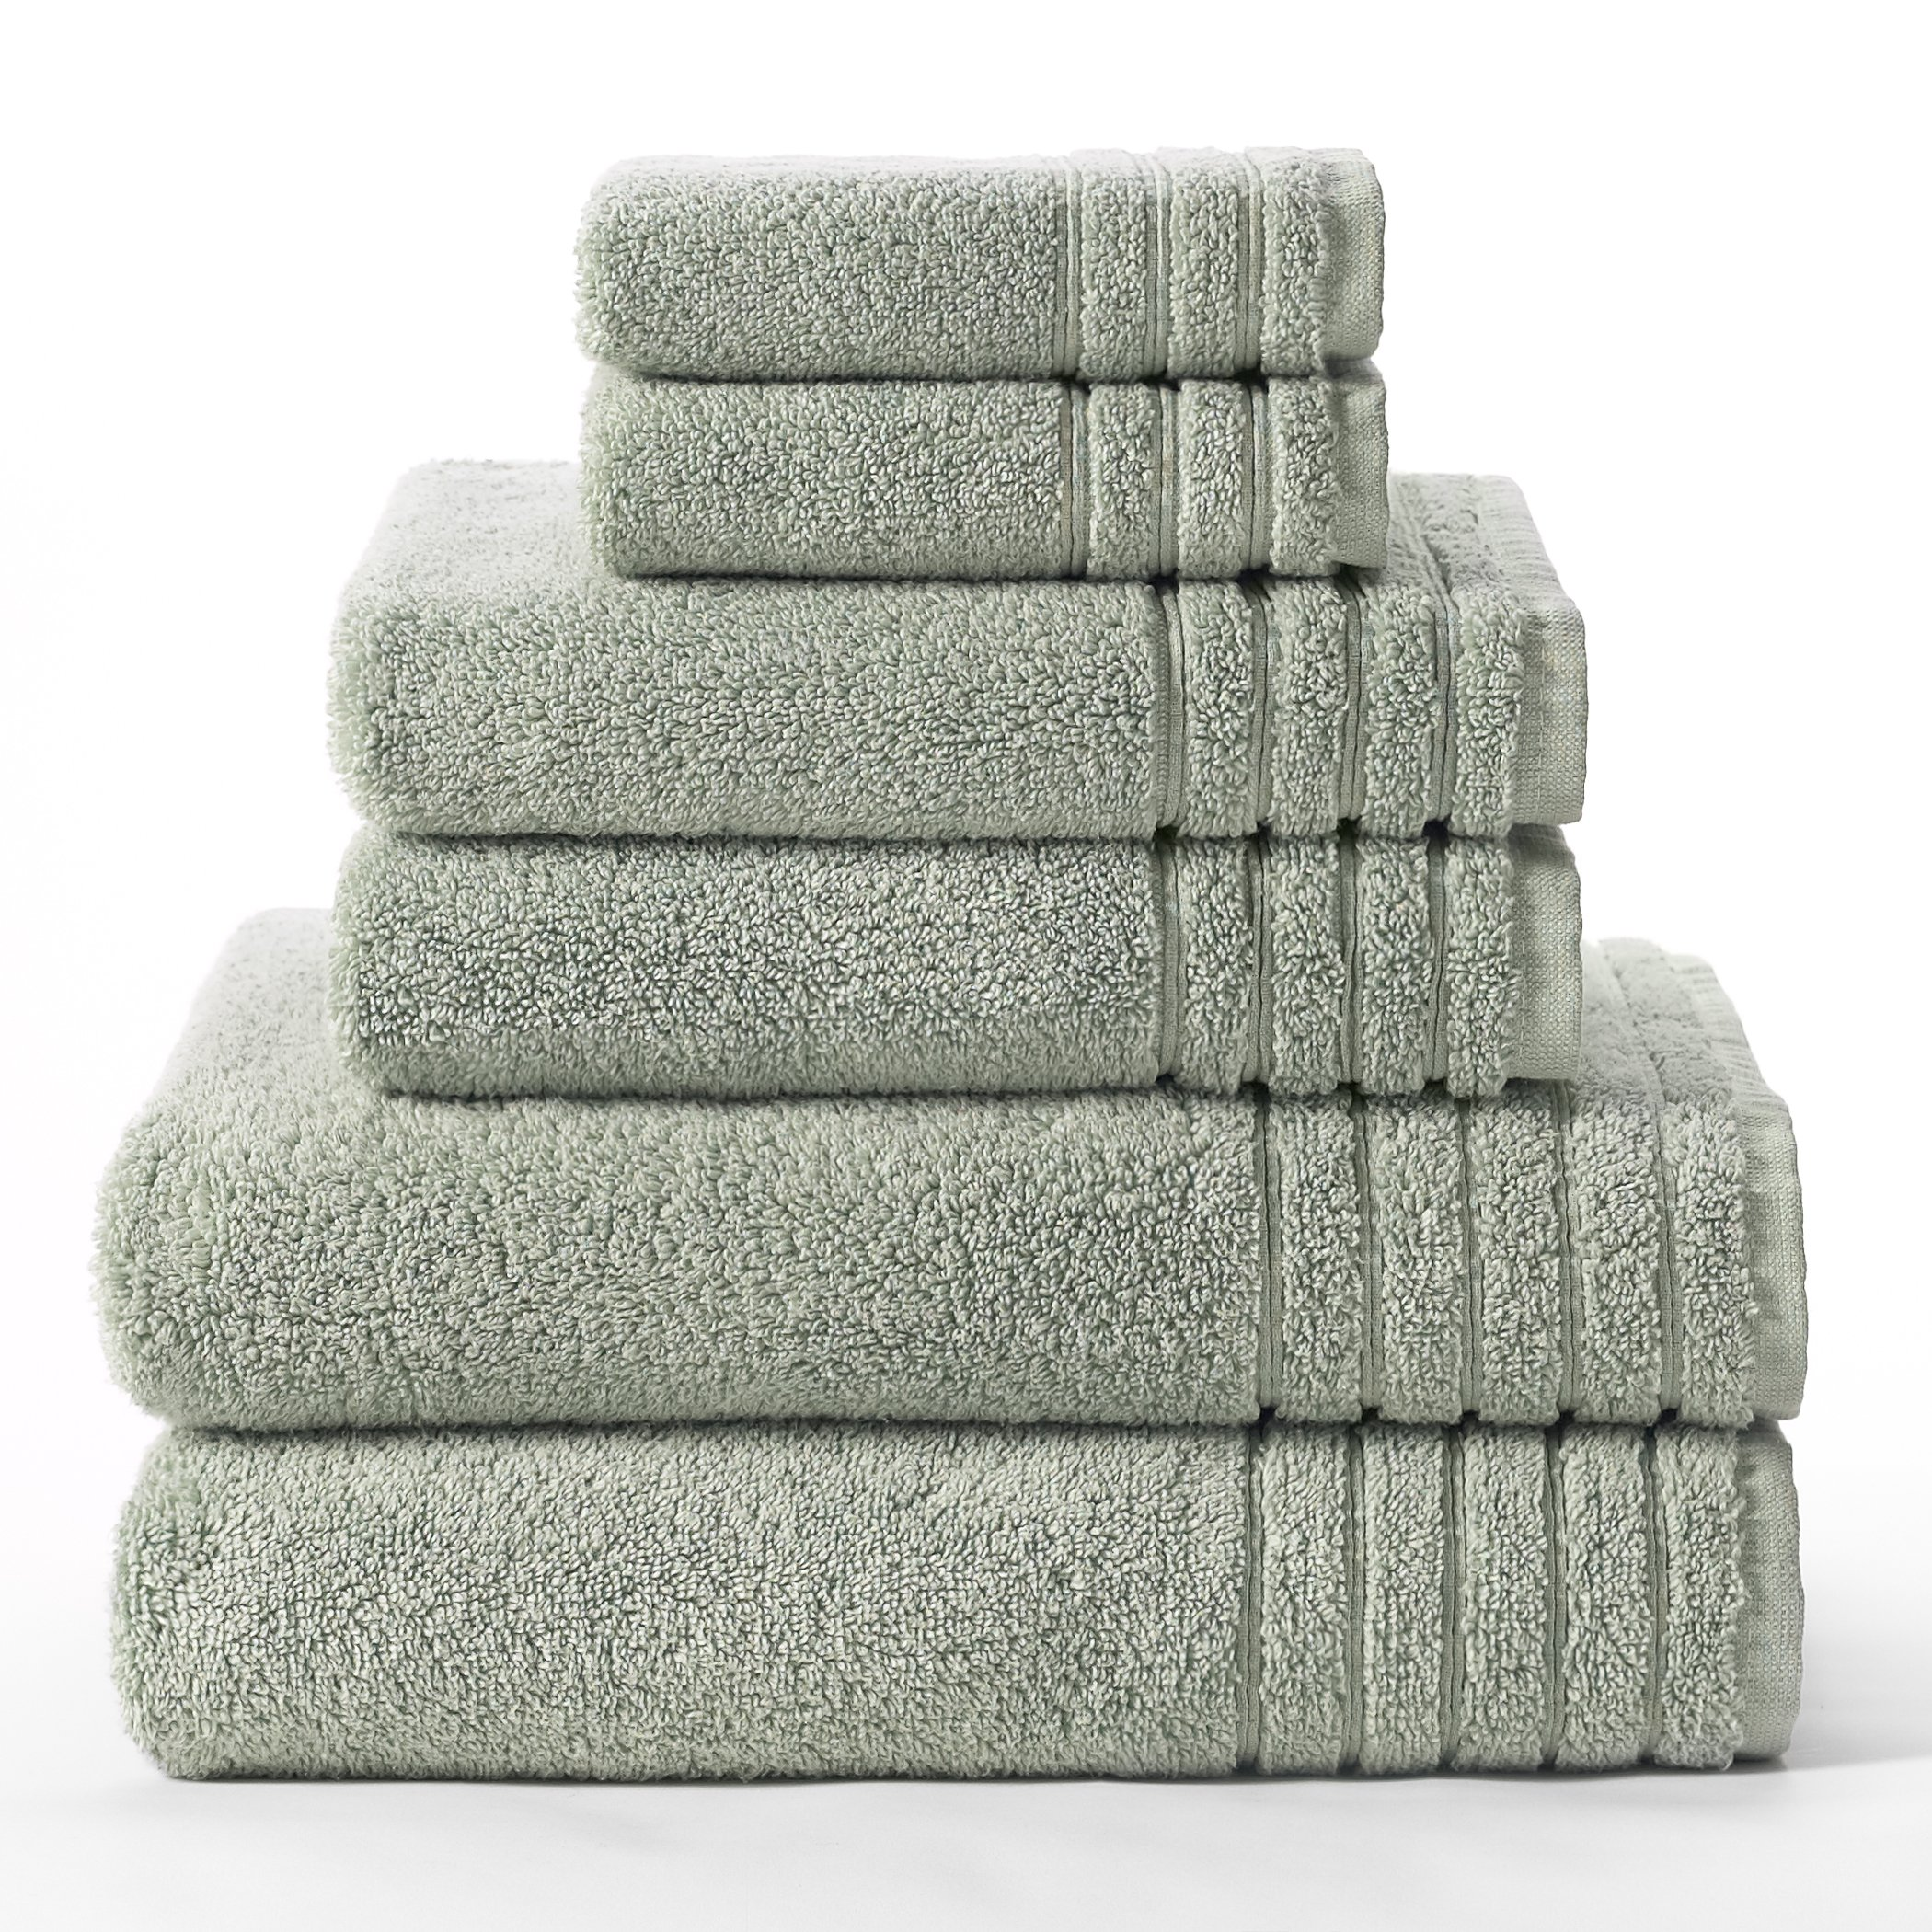 Cotton Craft - Super Zero Twist 6 Piece Towel Set - Spa - 7 Star Hotel Collection Beyond Luxury Softer Than A Cloud - Contains 2 Oversized Bath Towels 30x54, 2 Hand Towels 16x30, 2 Wash Cloths 13x13